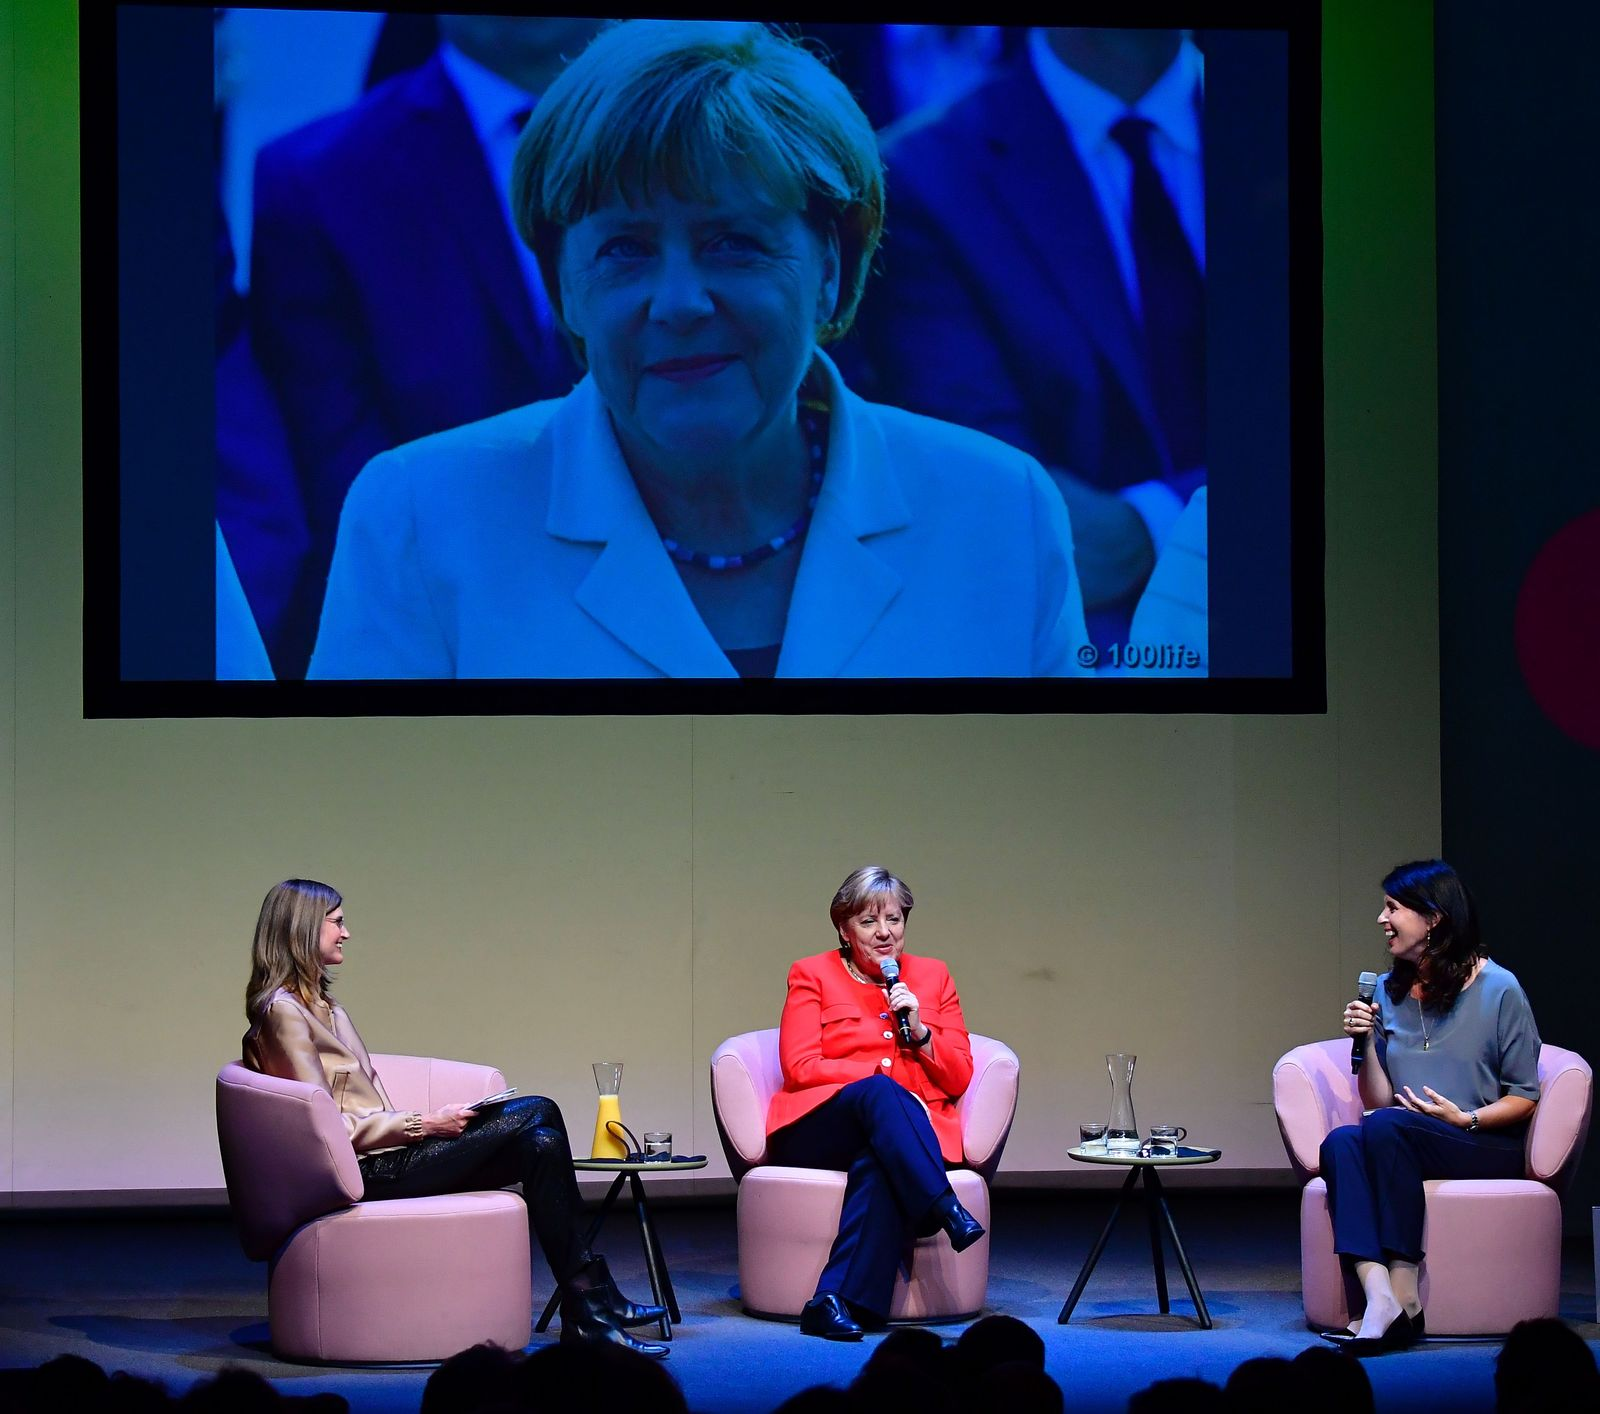 GERMANY-POLITICS-MERKEL-INTERVIEW-BRIGITTE